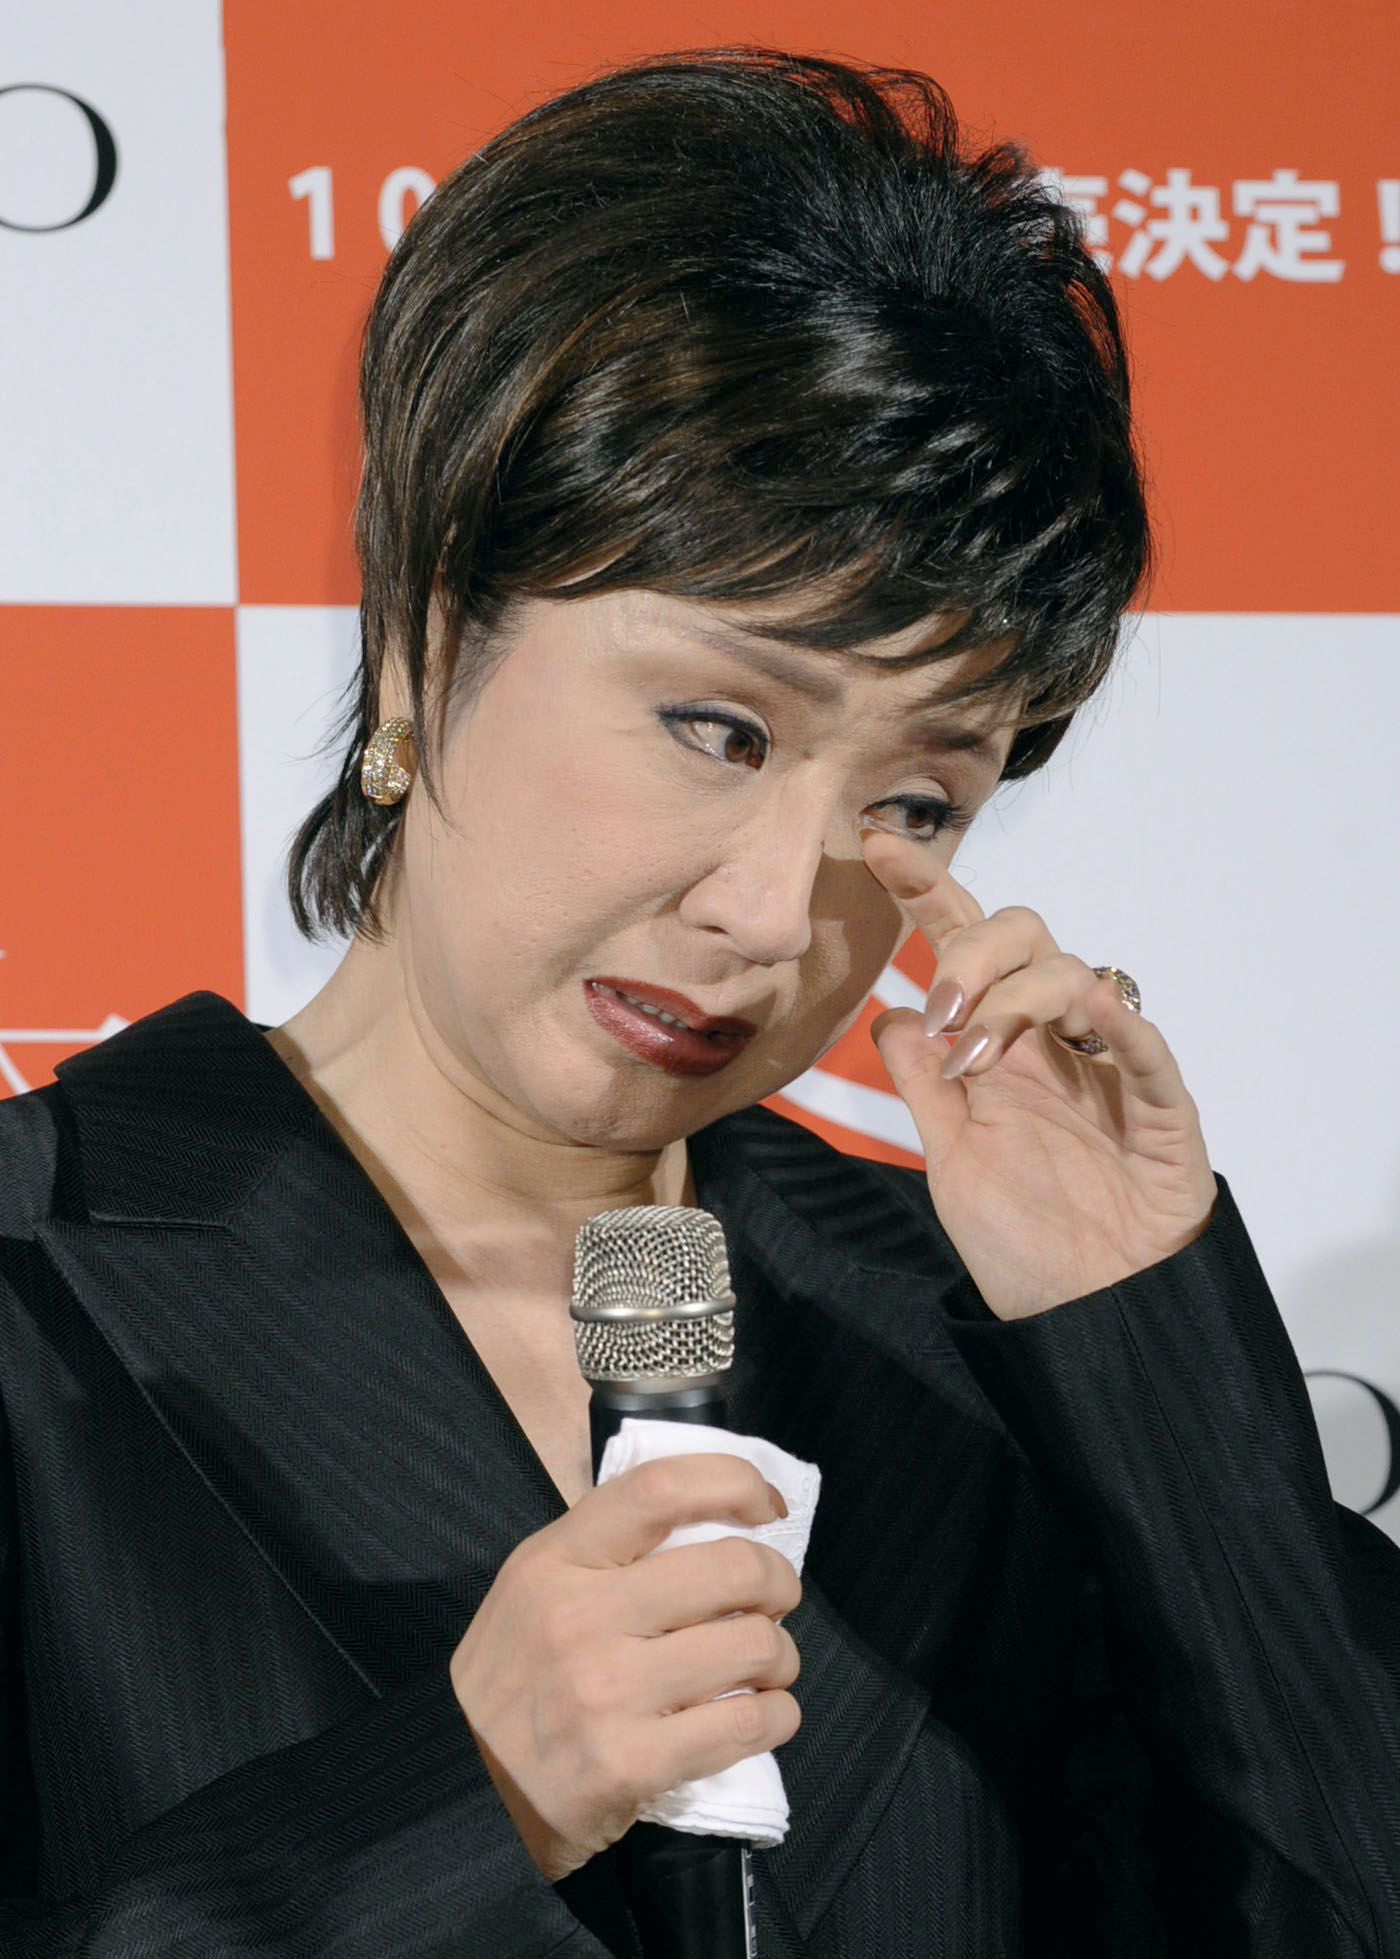 Red, white and blue: Enka singer Sachiko Kobayashi tears up during a recent press conference. The singer caused controversy in the spring by sacking two longtime employees of her production company, Sachiko Promotion. | KYODO